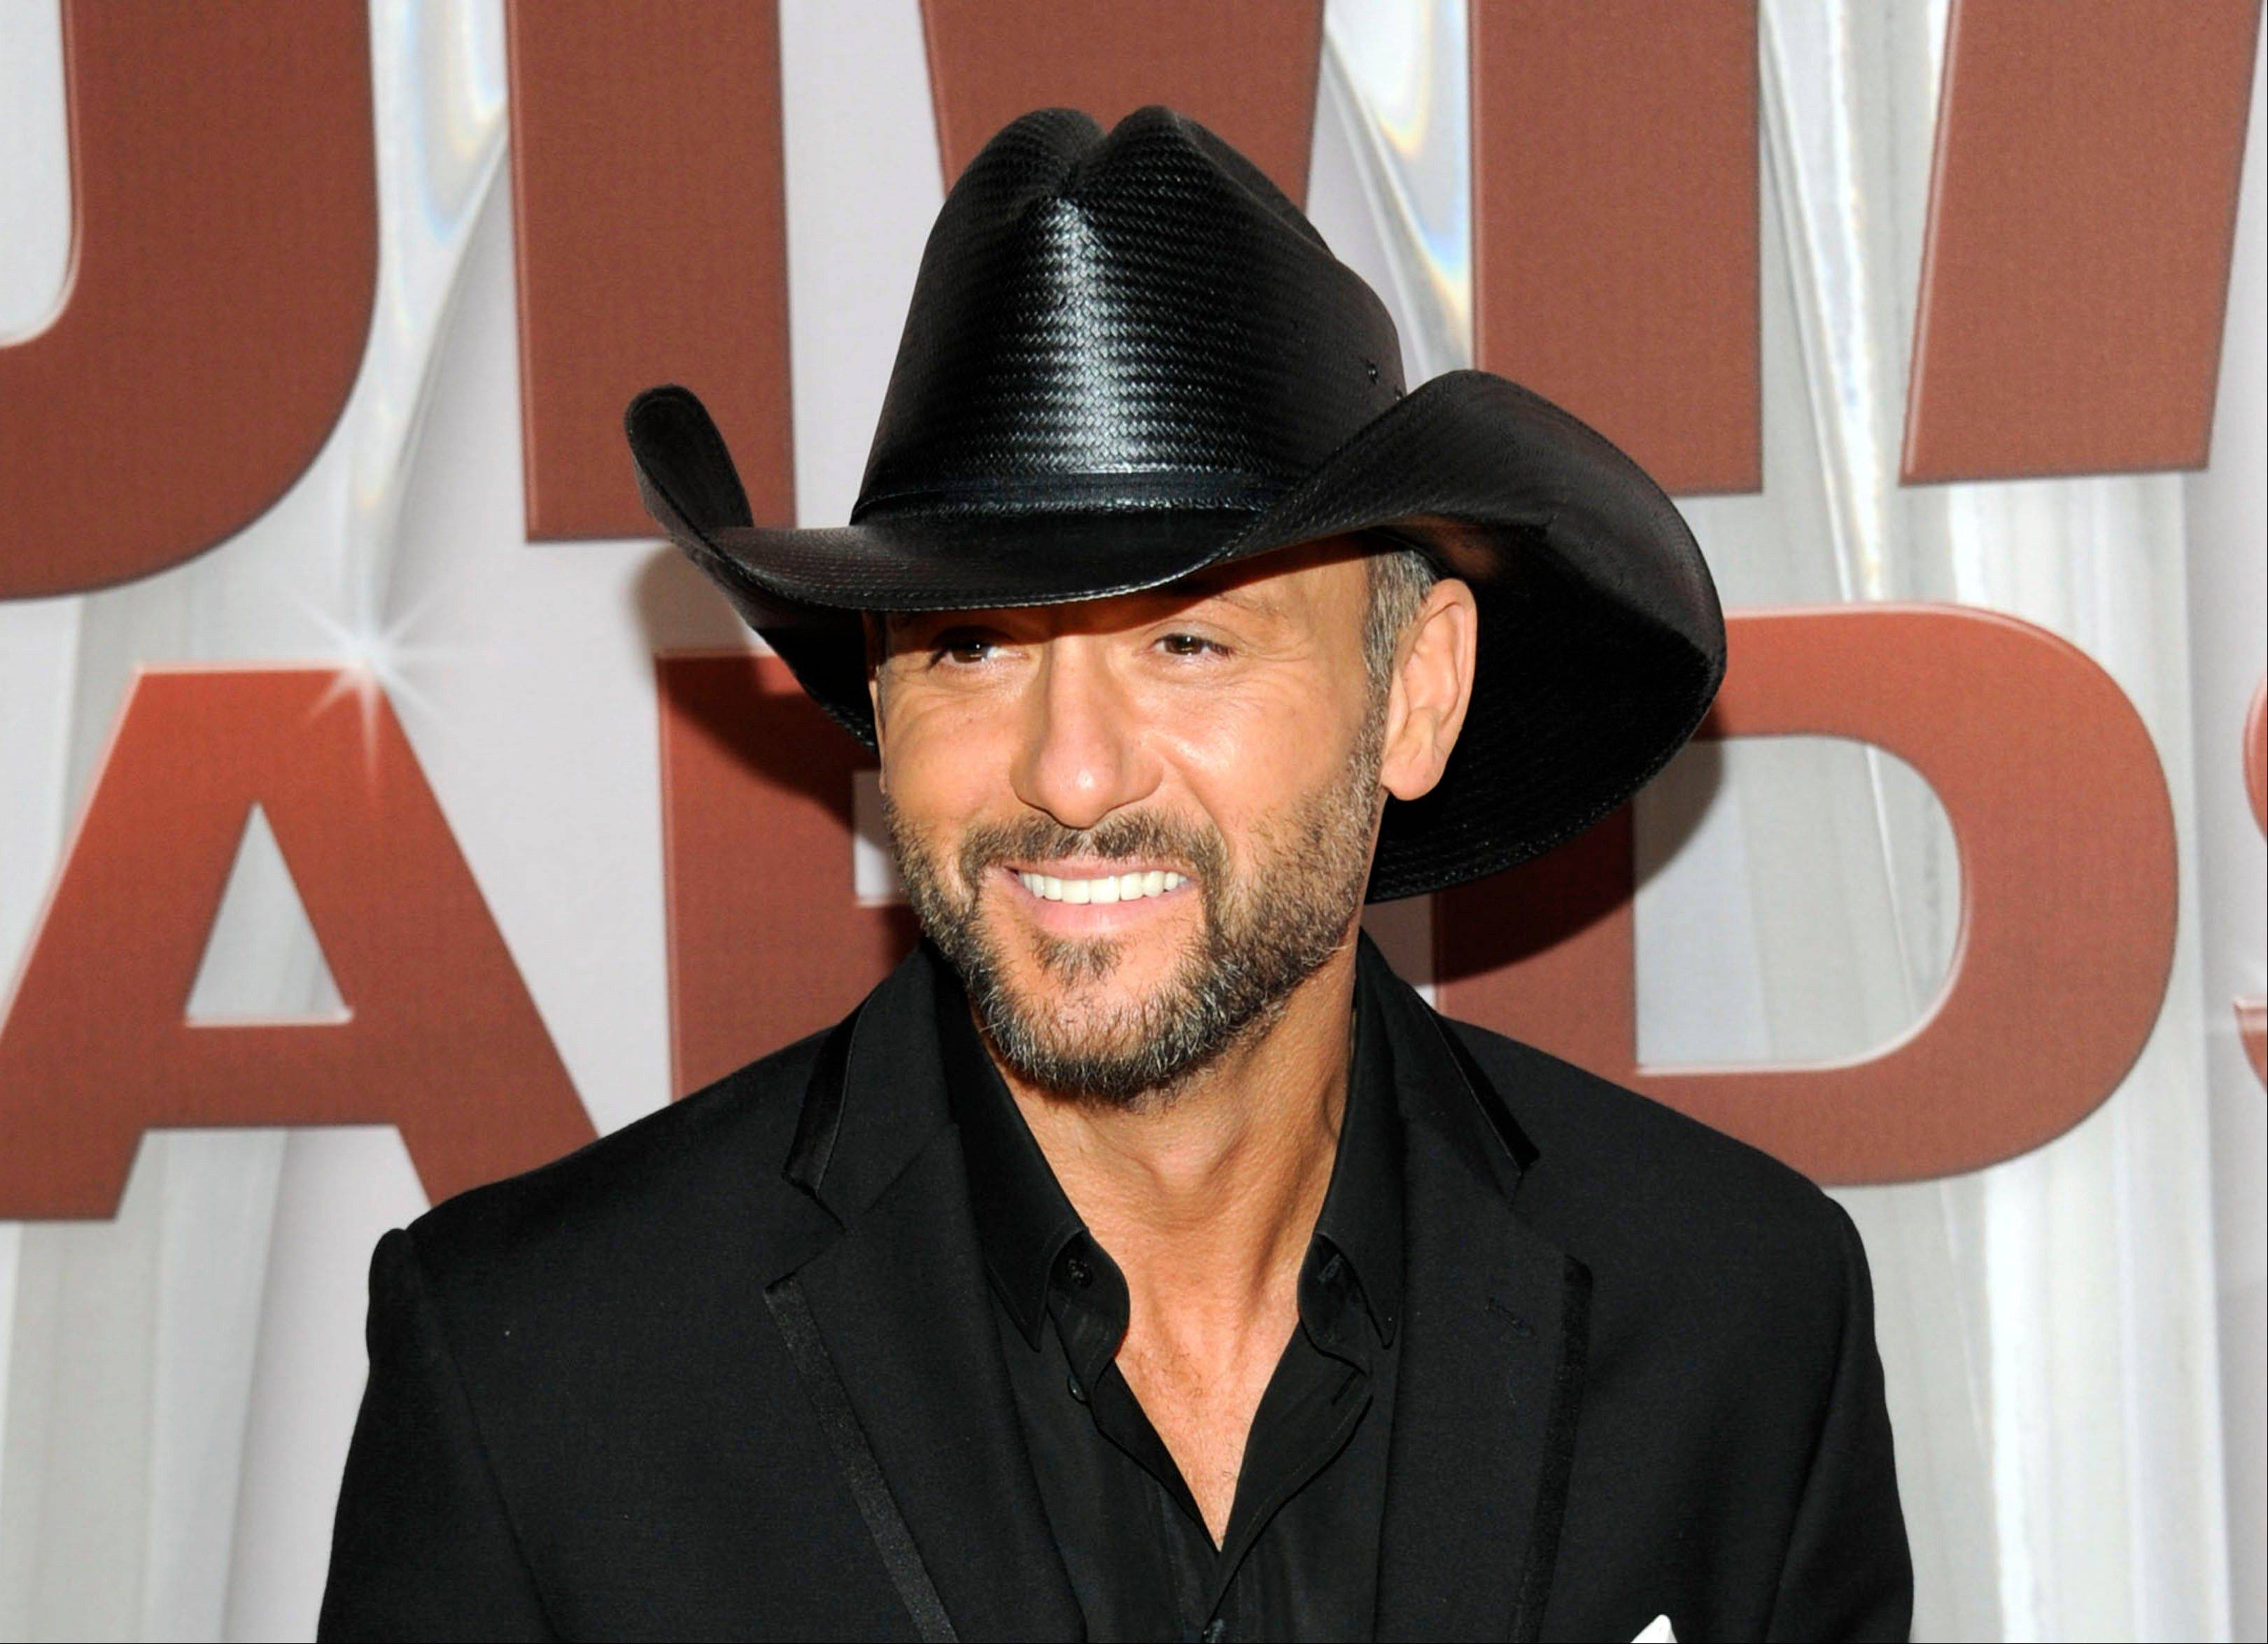 Tim McGraw and Miranda Lambert are the top nominees for this year's Academy of Country Music Awards. Lambert and McGraw are up for seven awards apiece at the April 6 awards show.